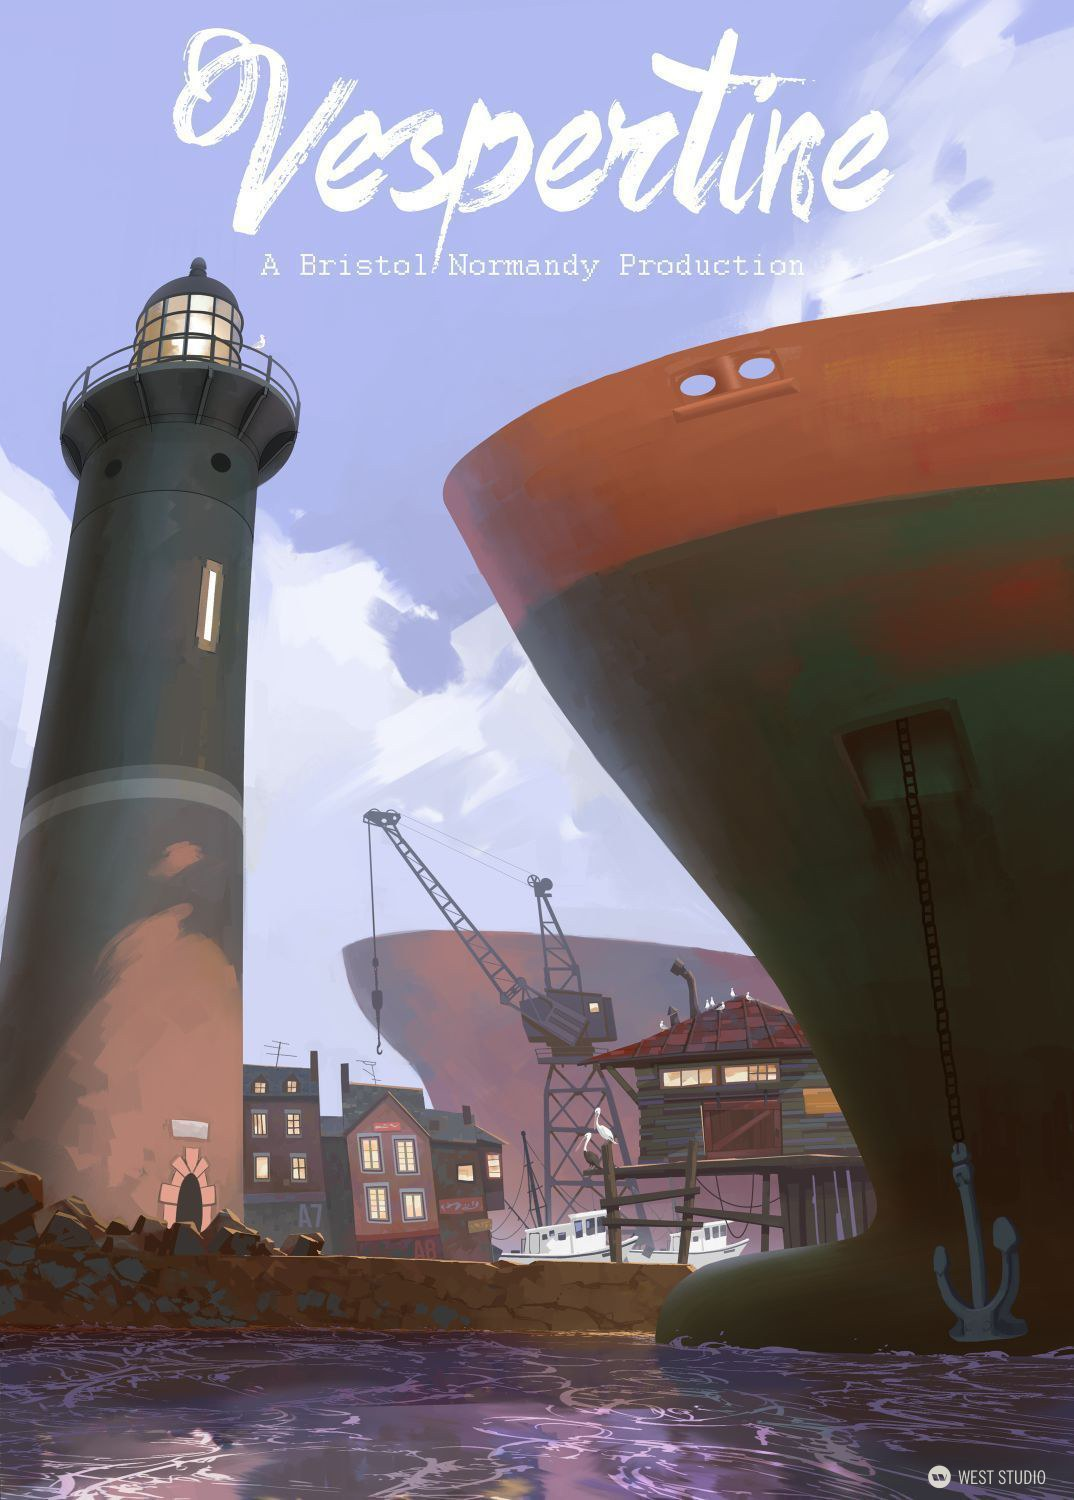 ships, lighthouse, harbor, poster